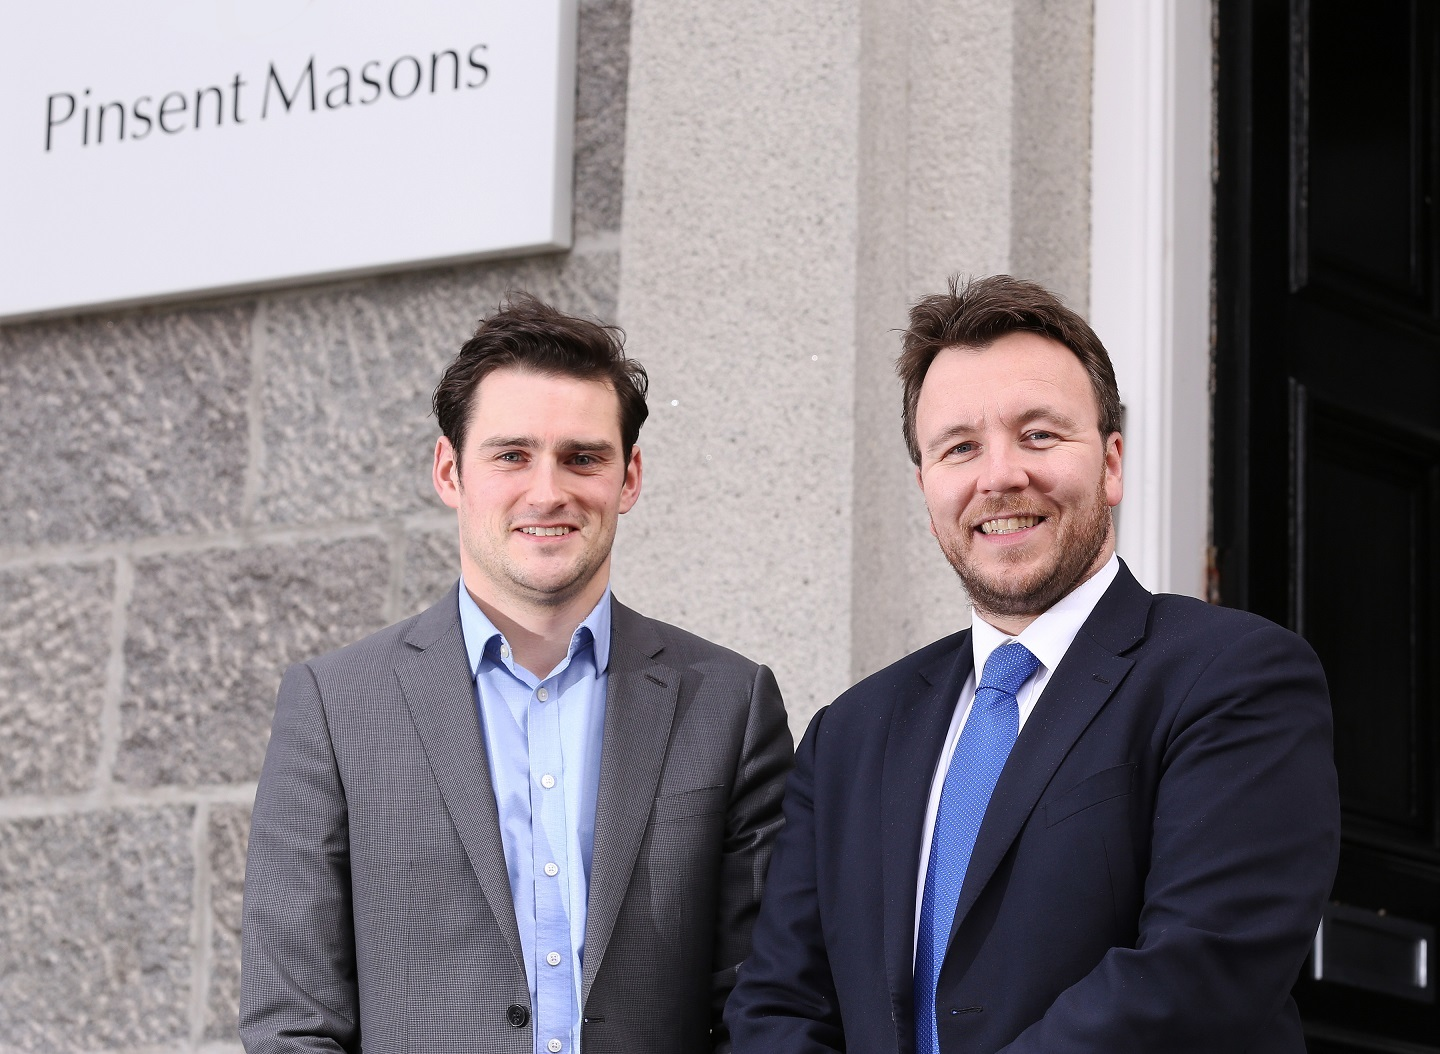 Pinsent Masons Partner Martin Ewan (left) with TechX delivery manager Stuart MacKinven